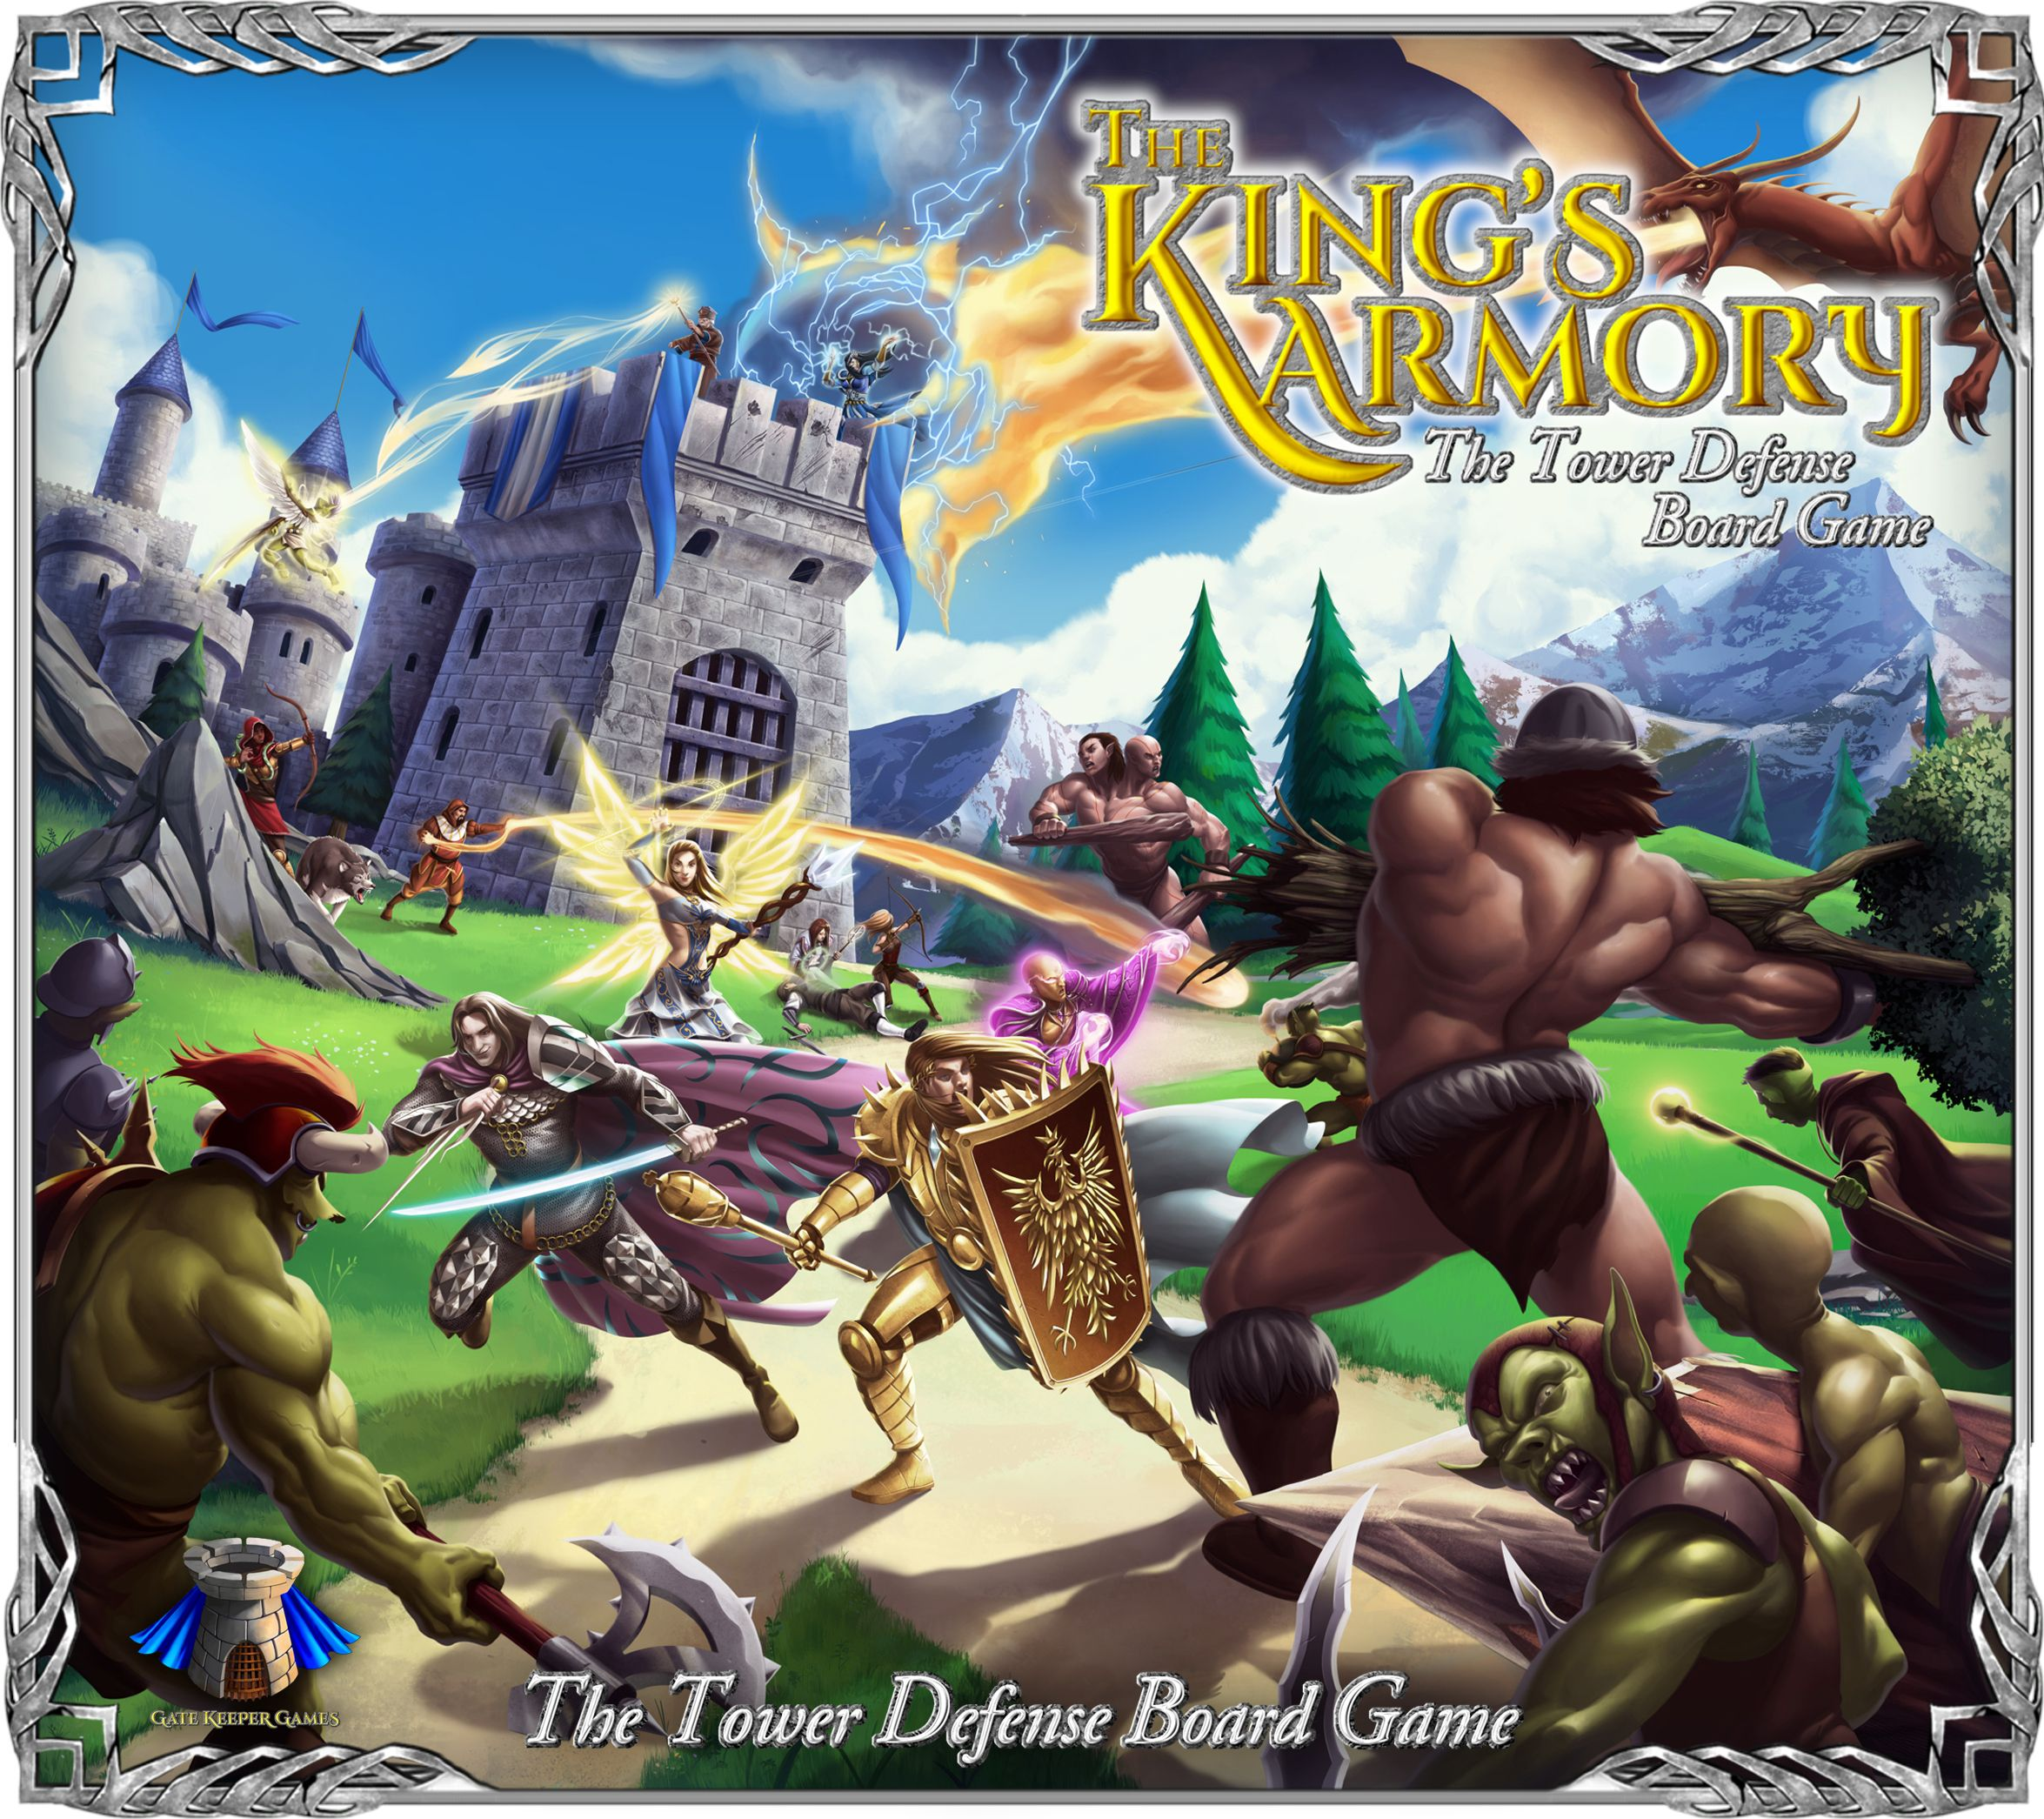 The King's Armory: 7th Anniversary Edition